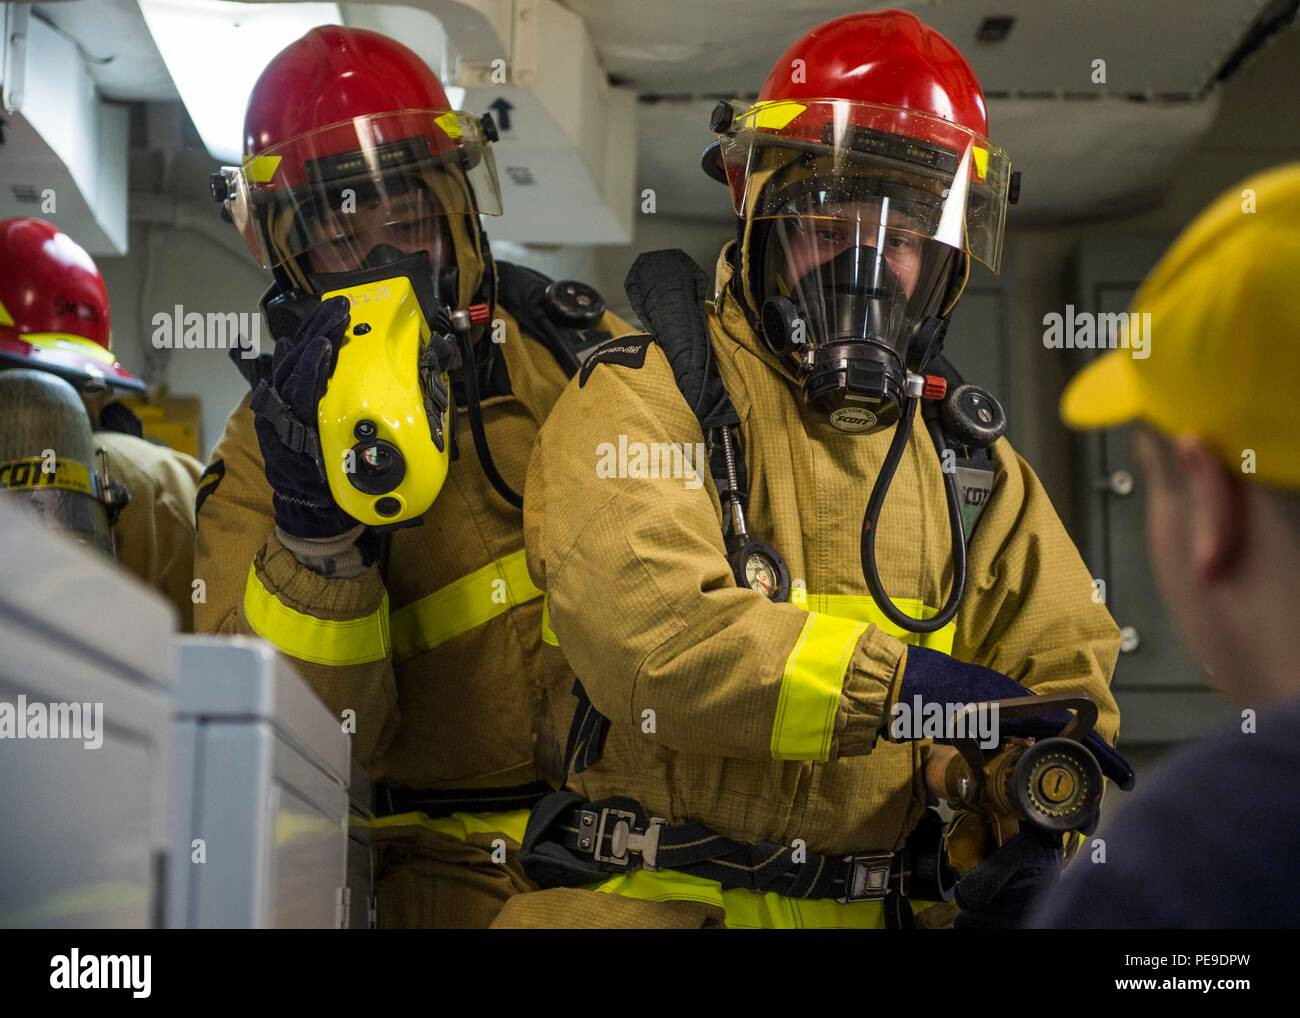 151115-N-YL073-116 GULF OF ADEN (Nov. 15, 2015) Logistics Specialist 3rd Class Nolan Prinze, from Stockton, Calif., and Damage Controlman Fireman Heath Simpson, from Castalian Springs, Tenn., receive firefighting technique training during a general quarters drill aboard the amphibious assault ship USS Kearsarge (LHD 3). Kearsarge is the flagship for the Kearsarge Amphibious Ready Group (ARG) and, with the embarked 26th Marine Expeditionary Unit (MEU), is deployed in support of maritime security operations and theater security cooperation efforts in the U.S. 5th Fleet area of operations. (U.S.  - Stock Image